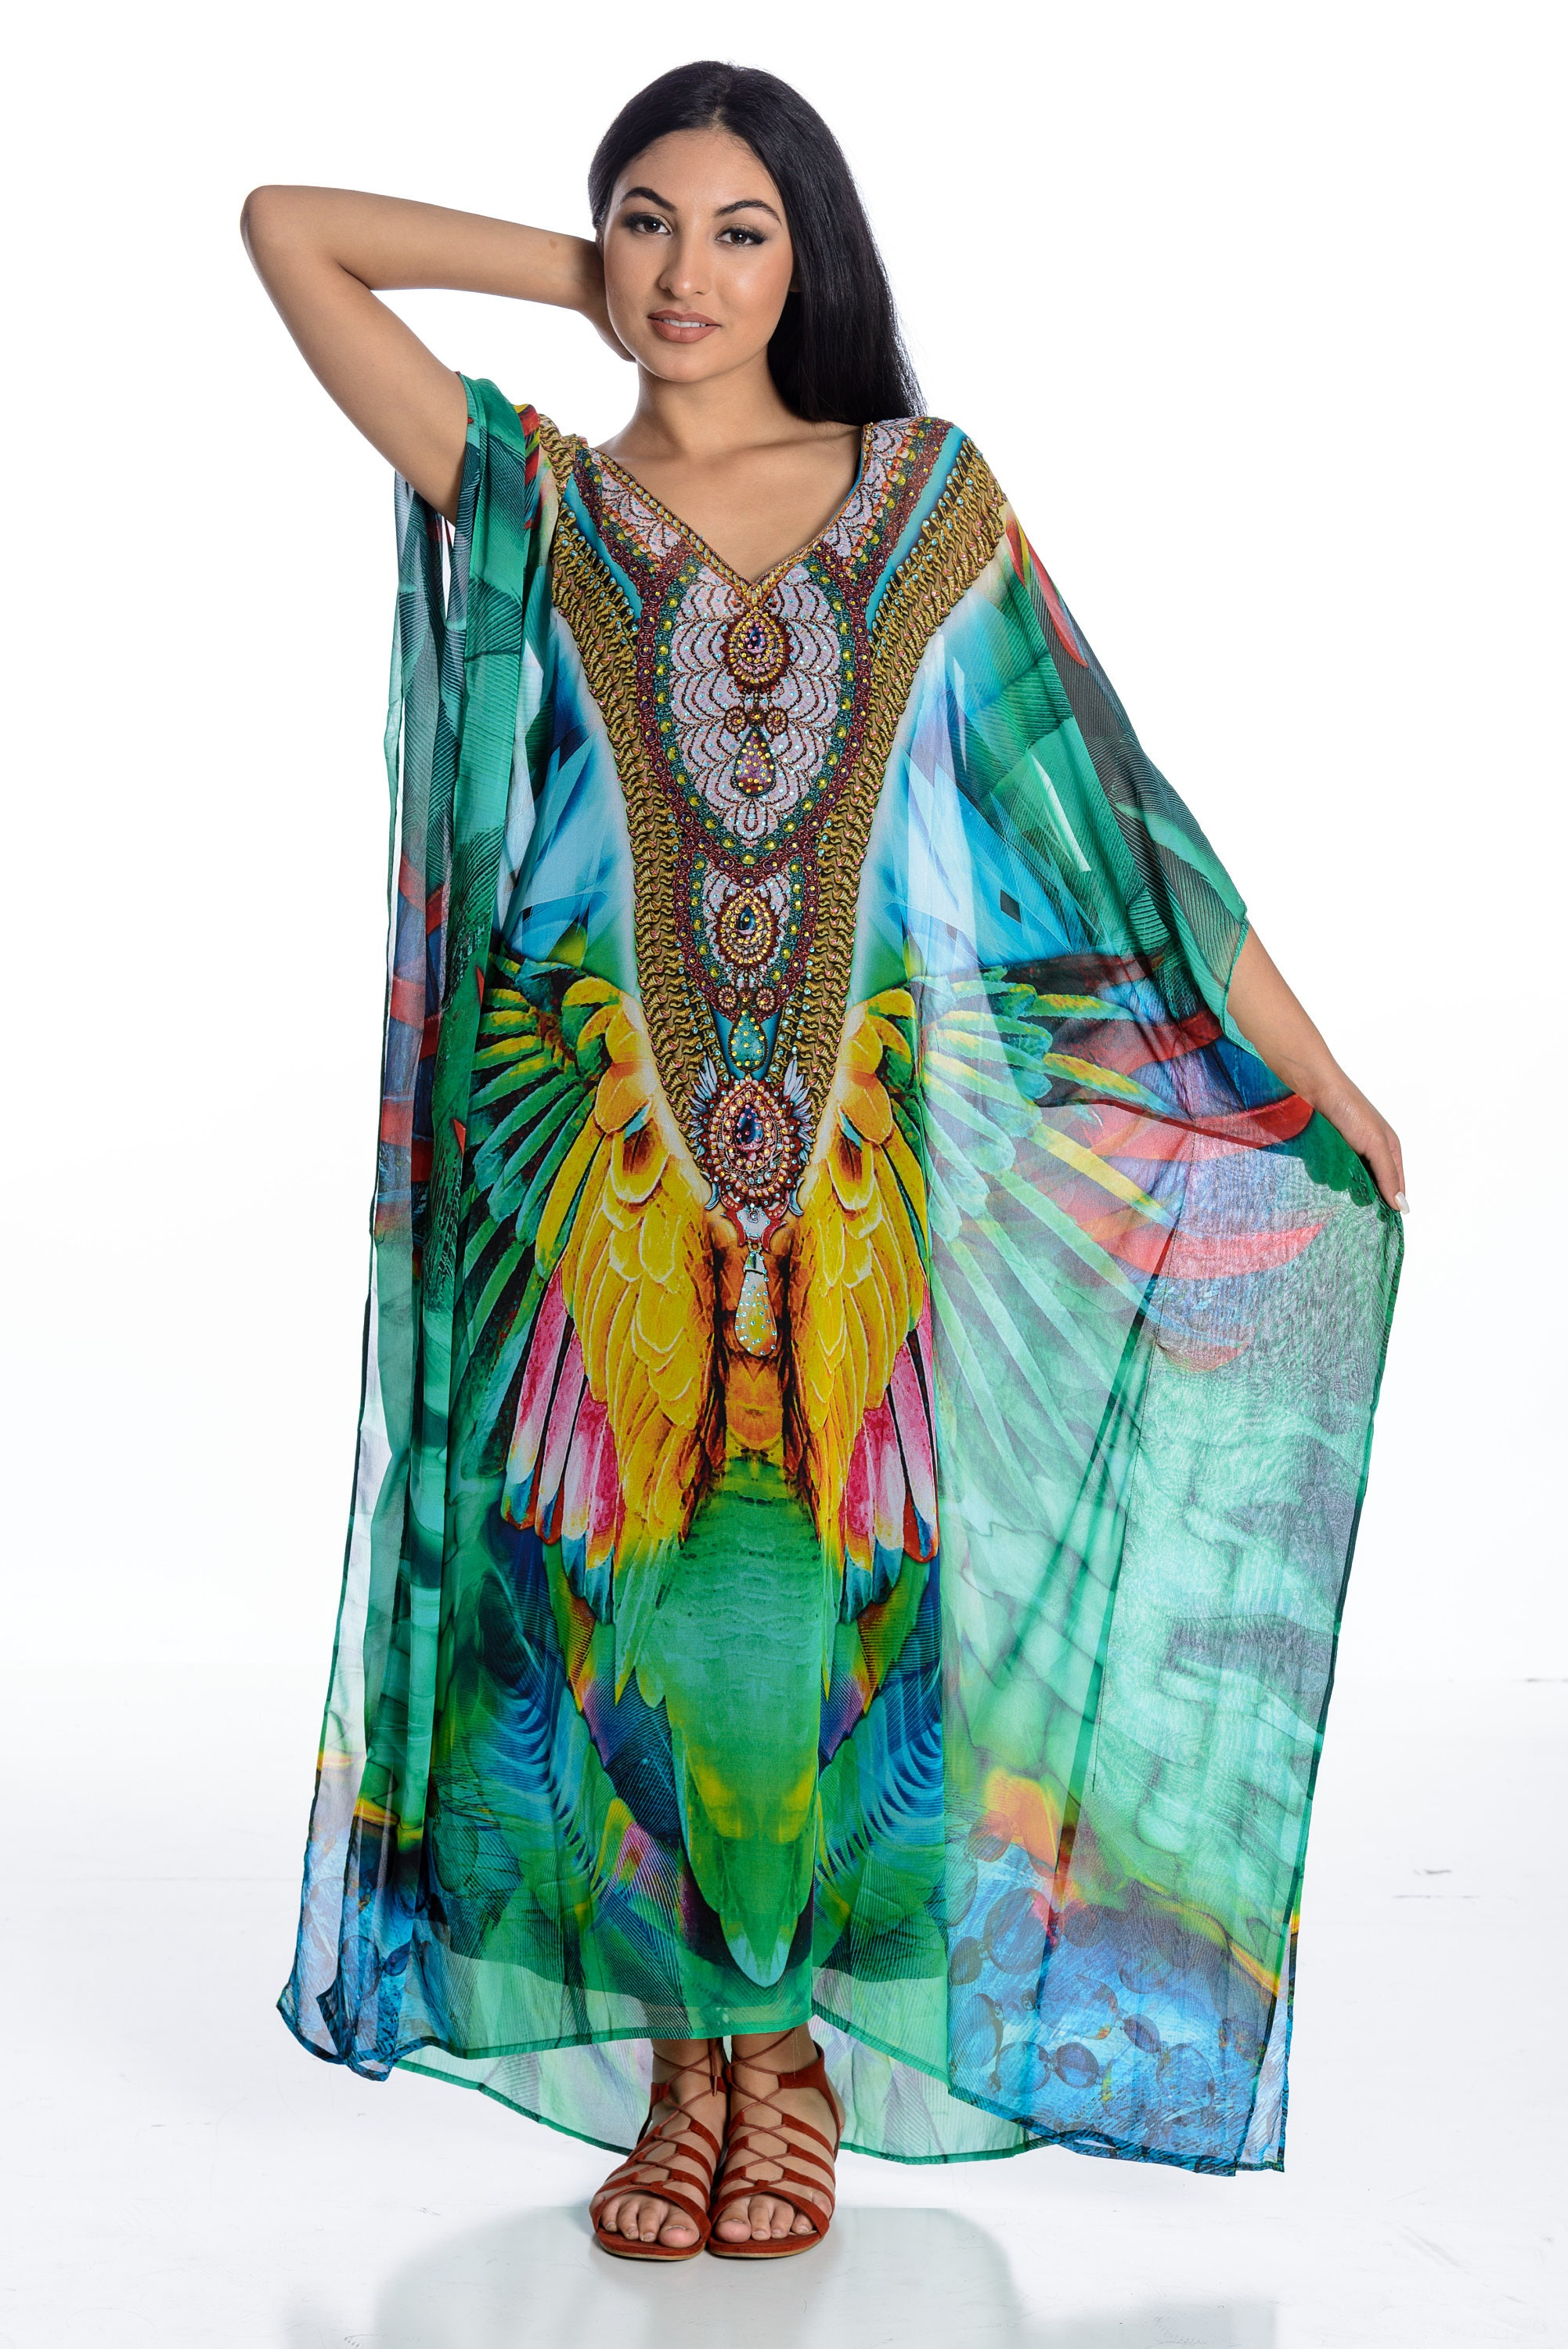 There is something so beautifully laid back yet delicate about a Moroccan kaftan. These bohemian kaftans are handmade in our atelier in Marrakech. See inside.